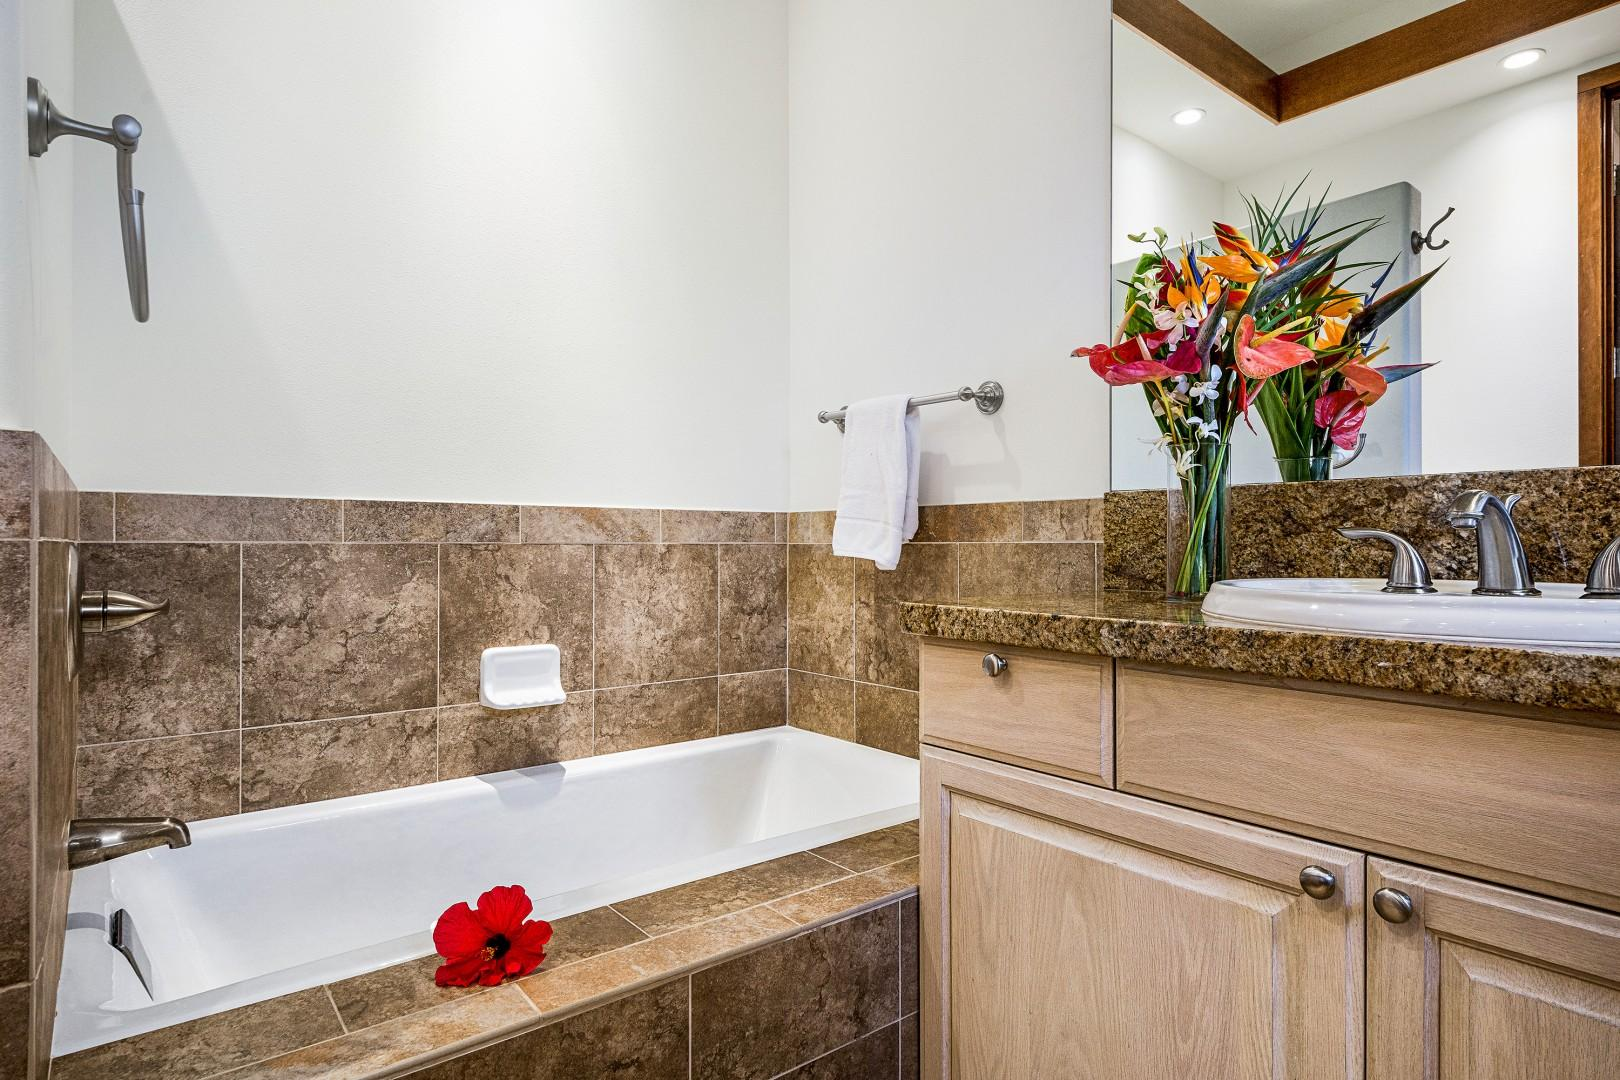 Large soaking tub and standing shower can be found in the Master bathroom